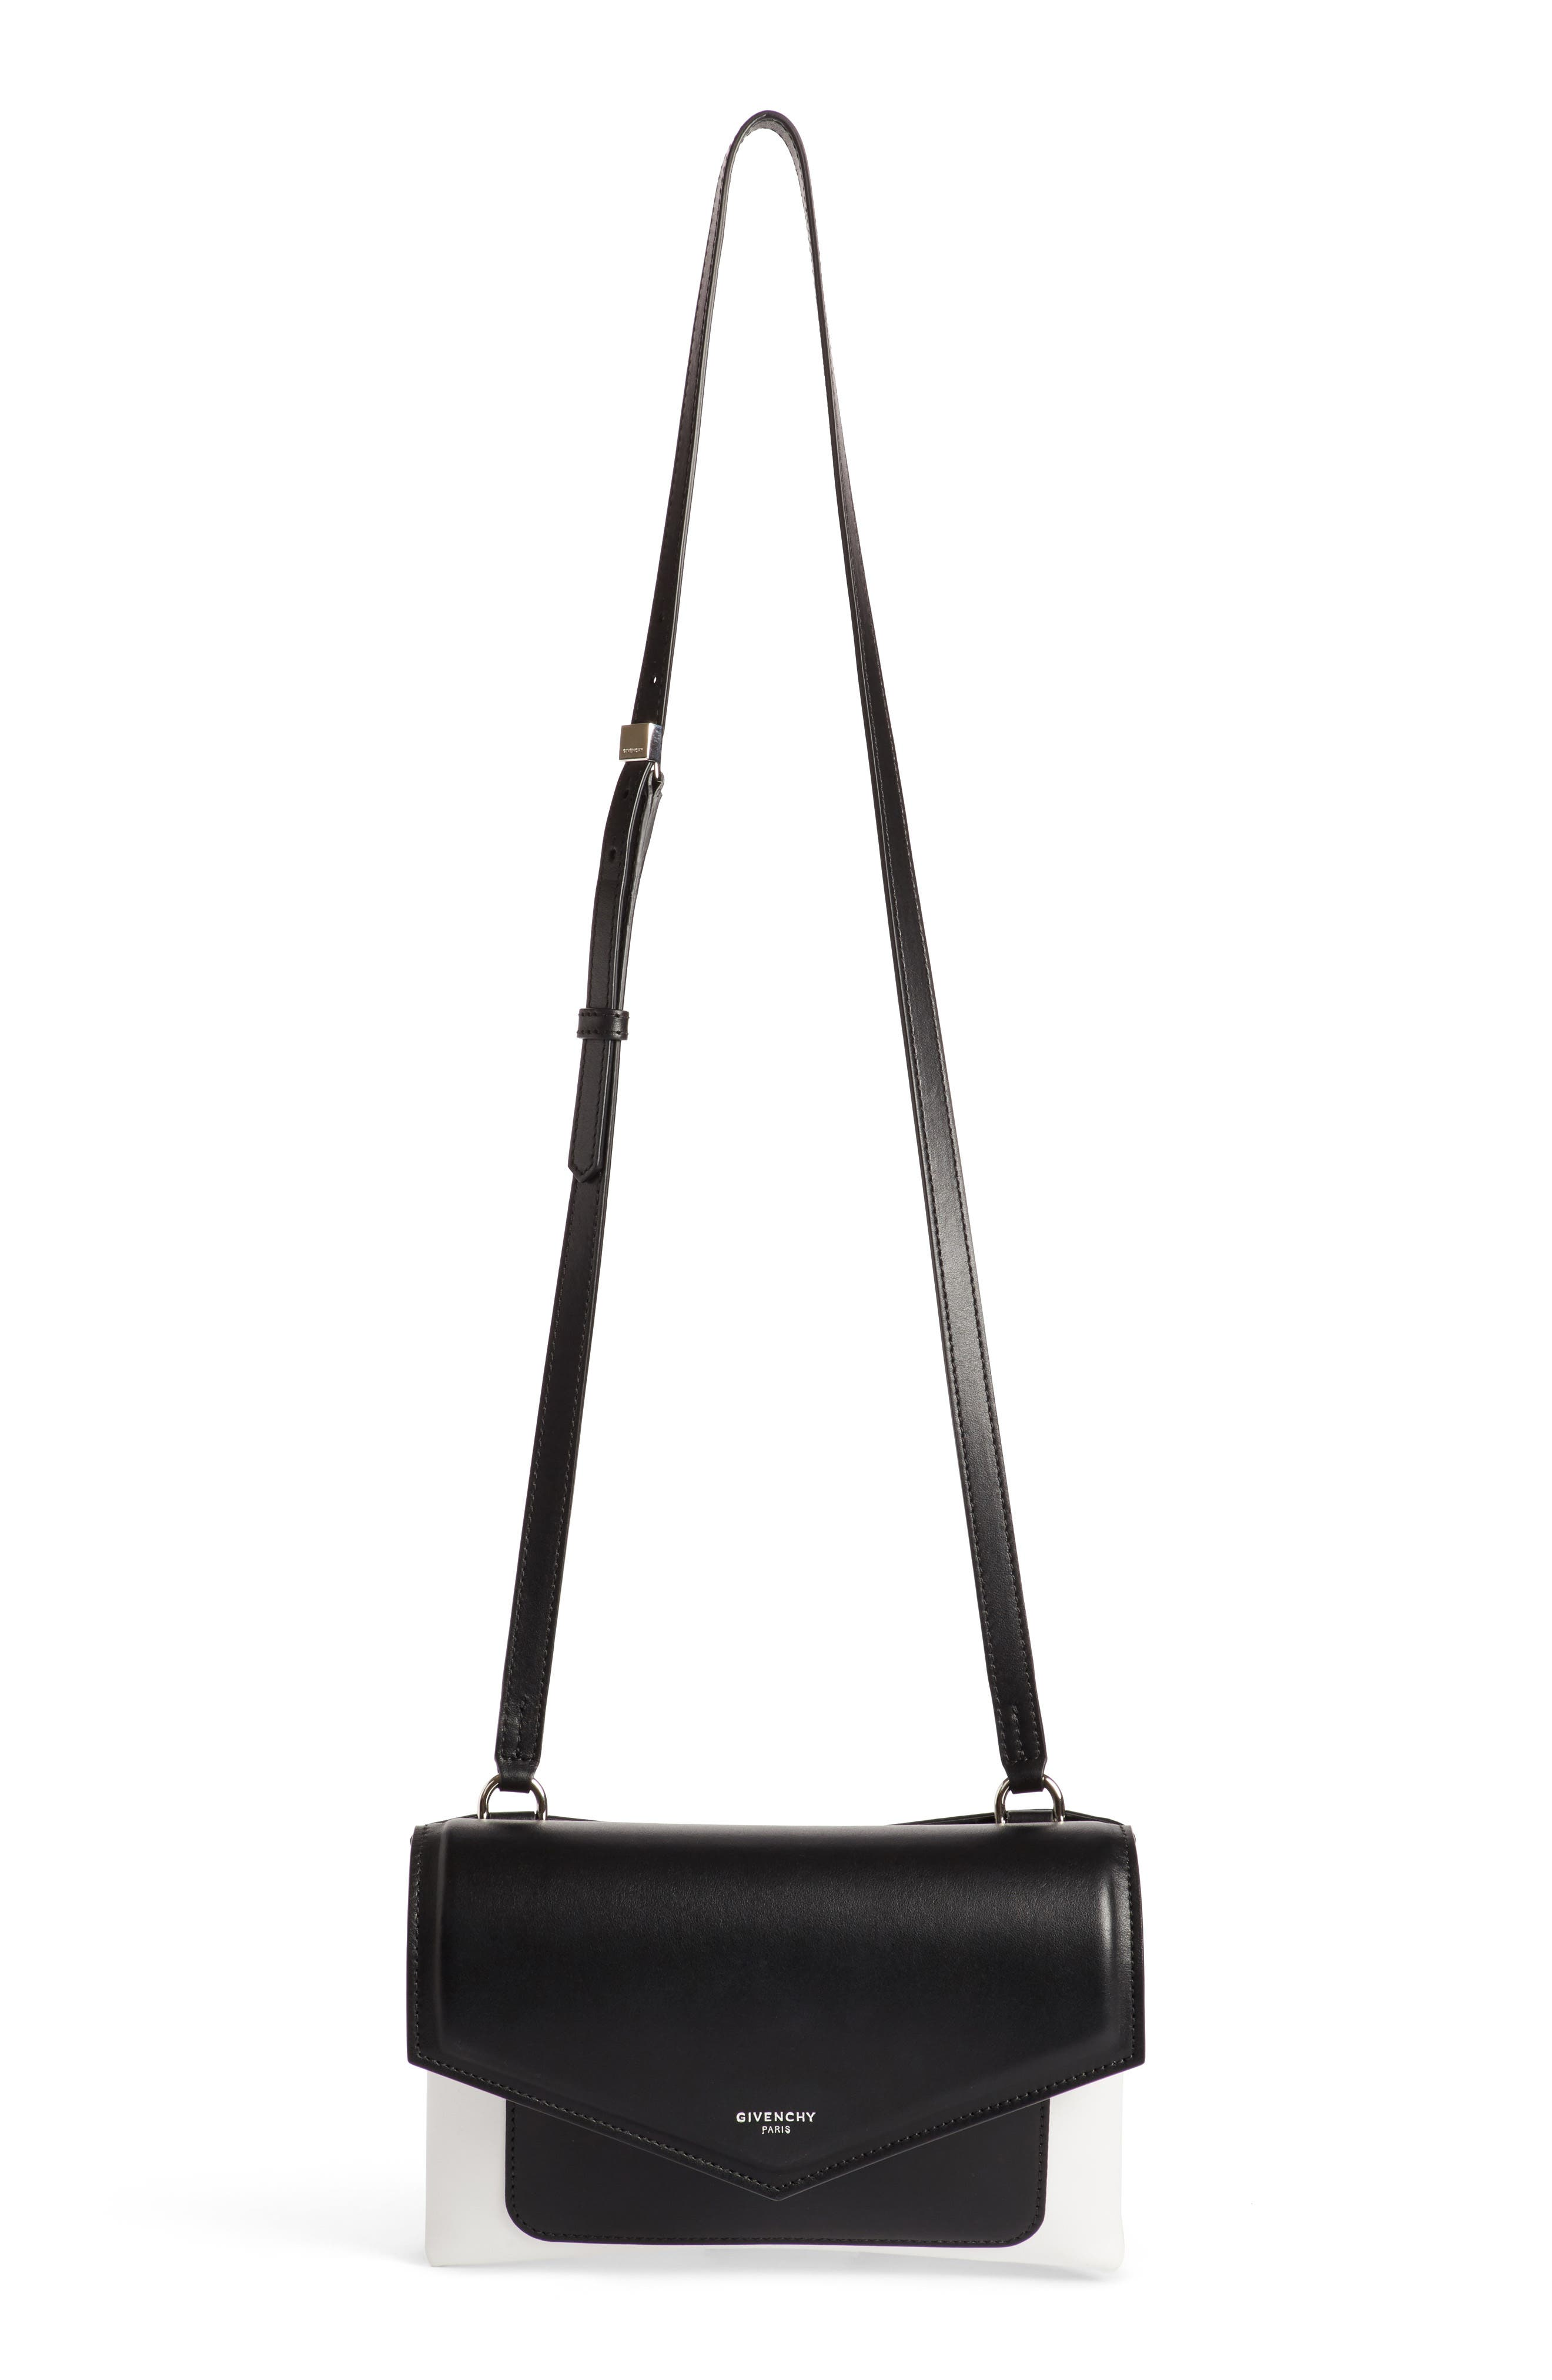 Main Image - Givenchy Duetto Bicolor Leather Flap Crossbody Bag